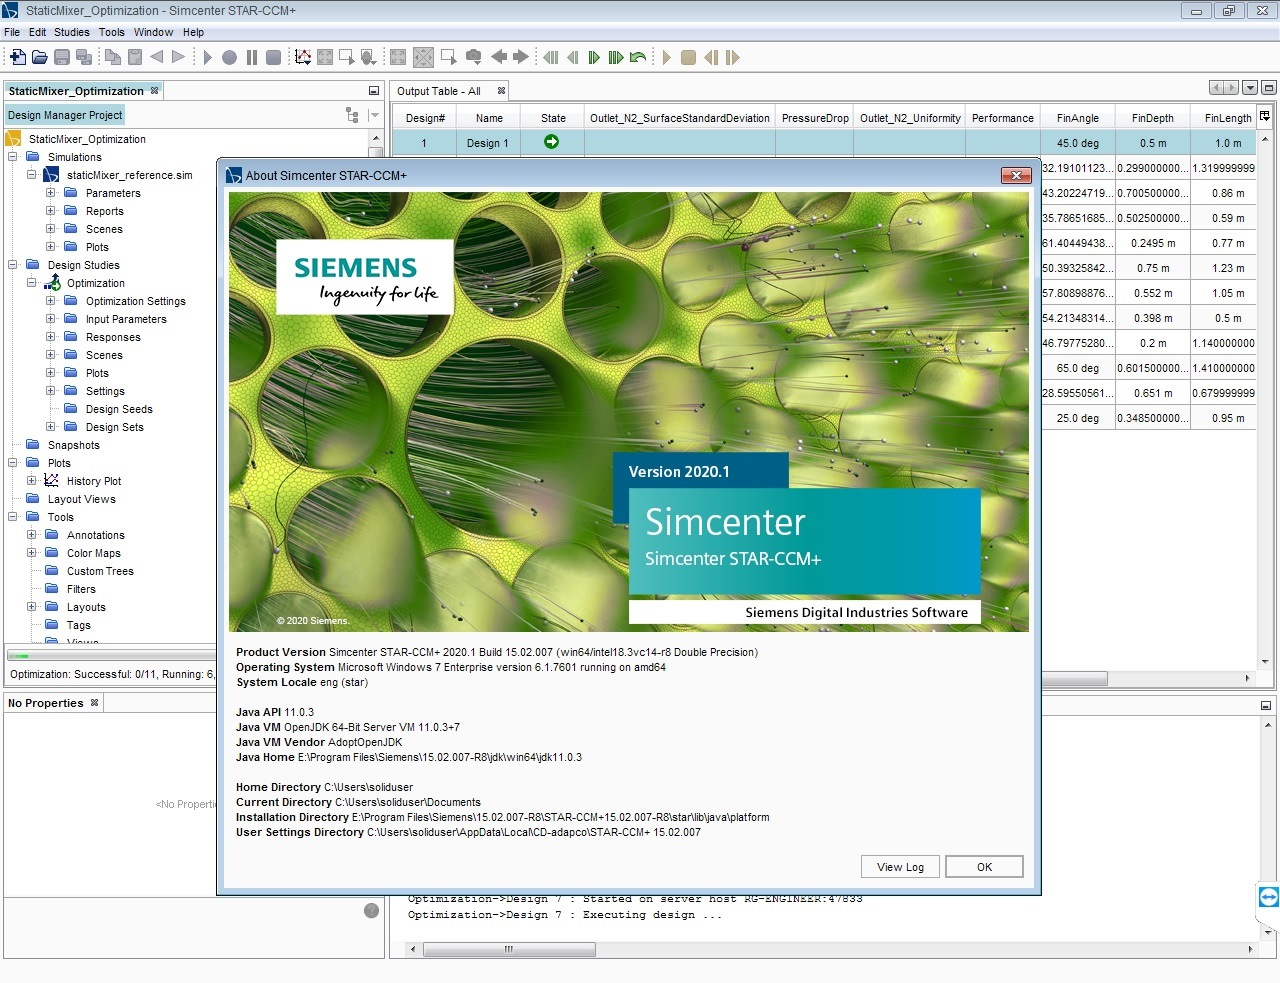 Working with Siemens Star CCM+ 2020.1.0 (15.02.007-R8 double precision) full license